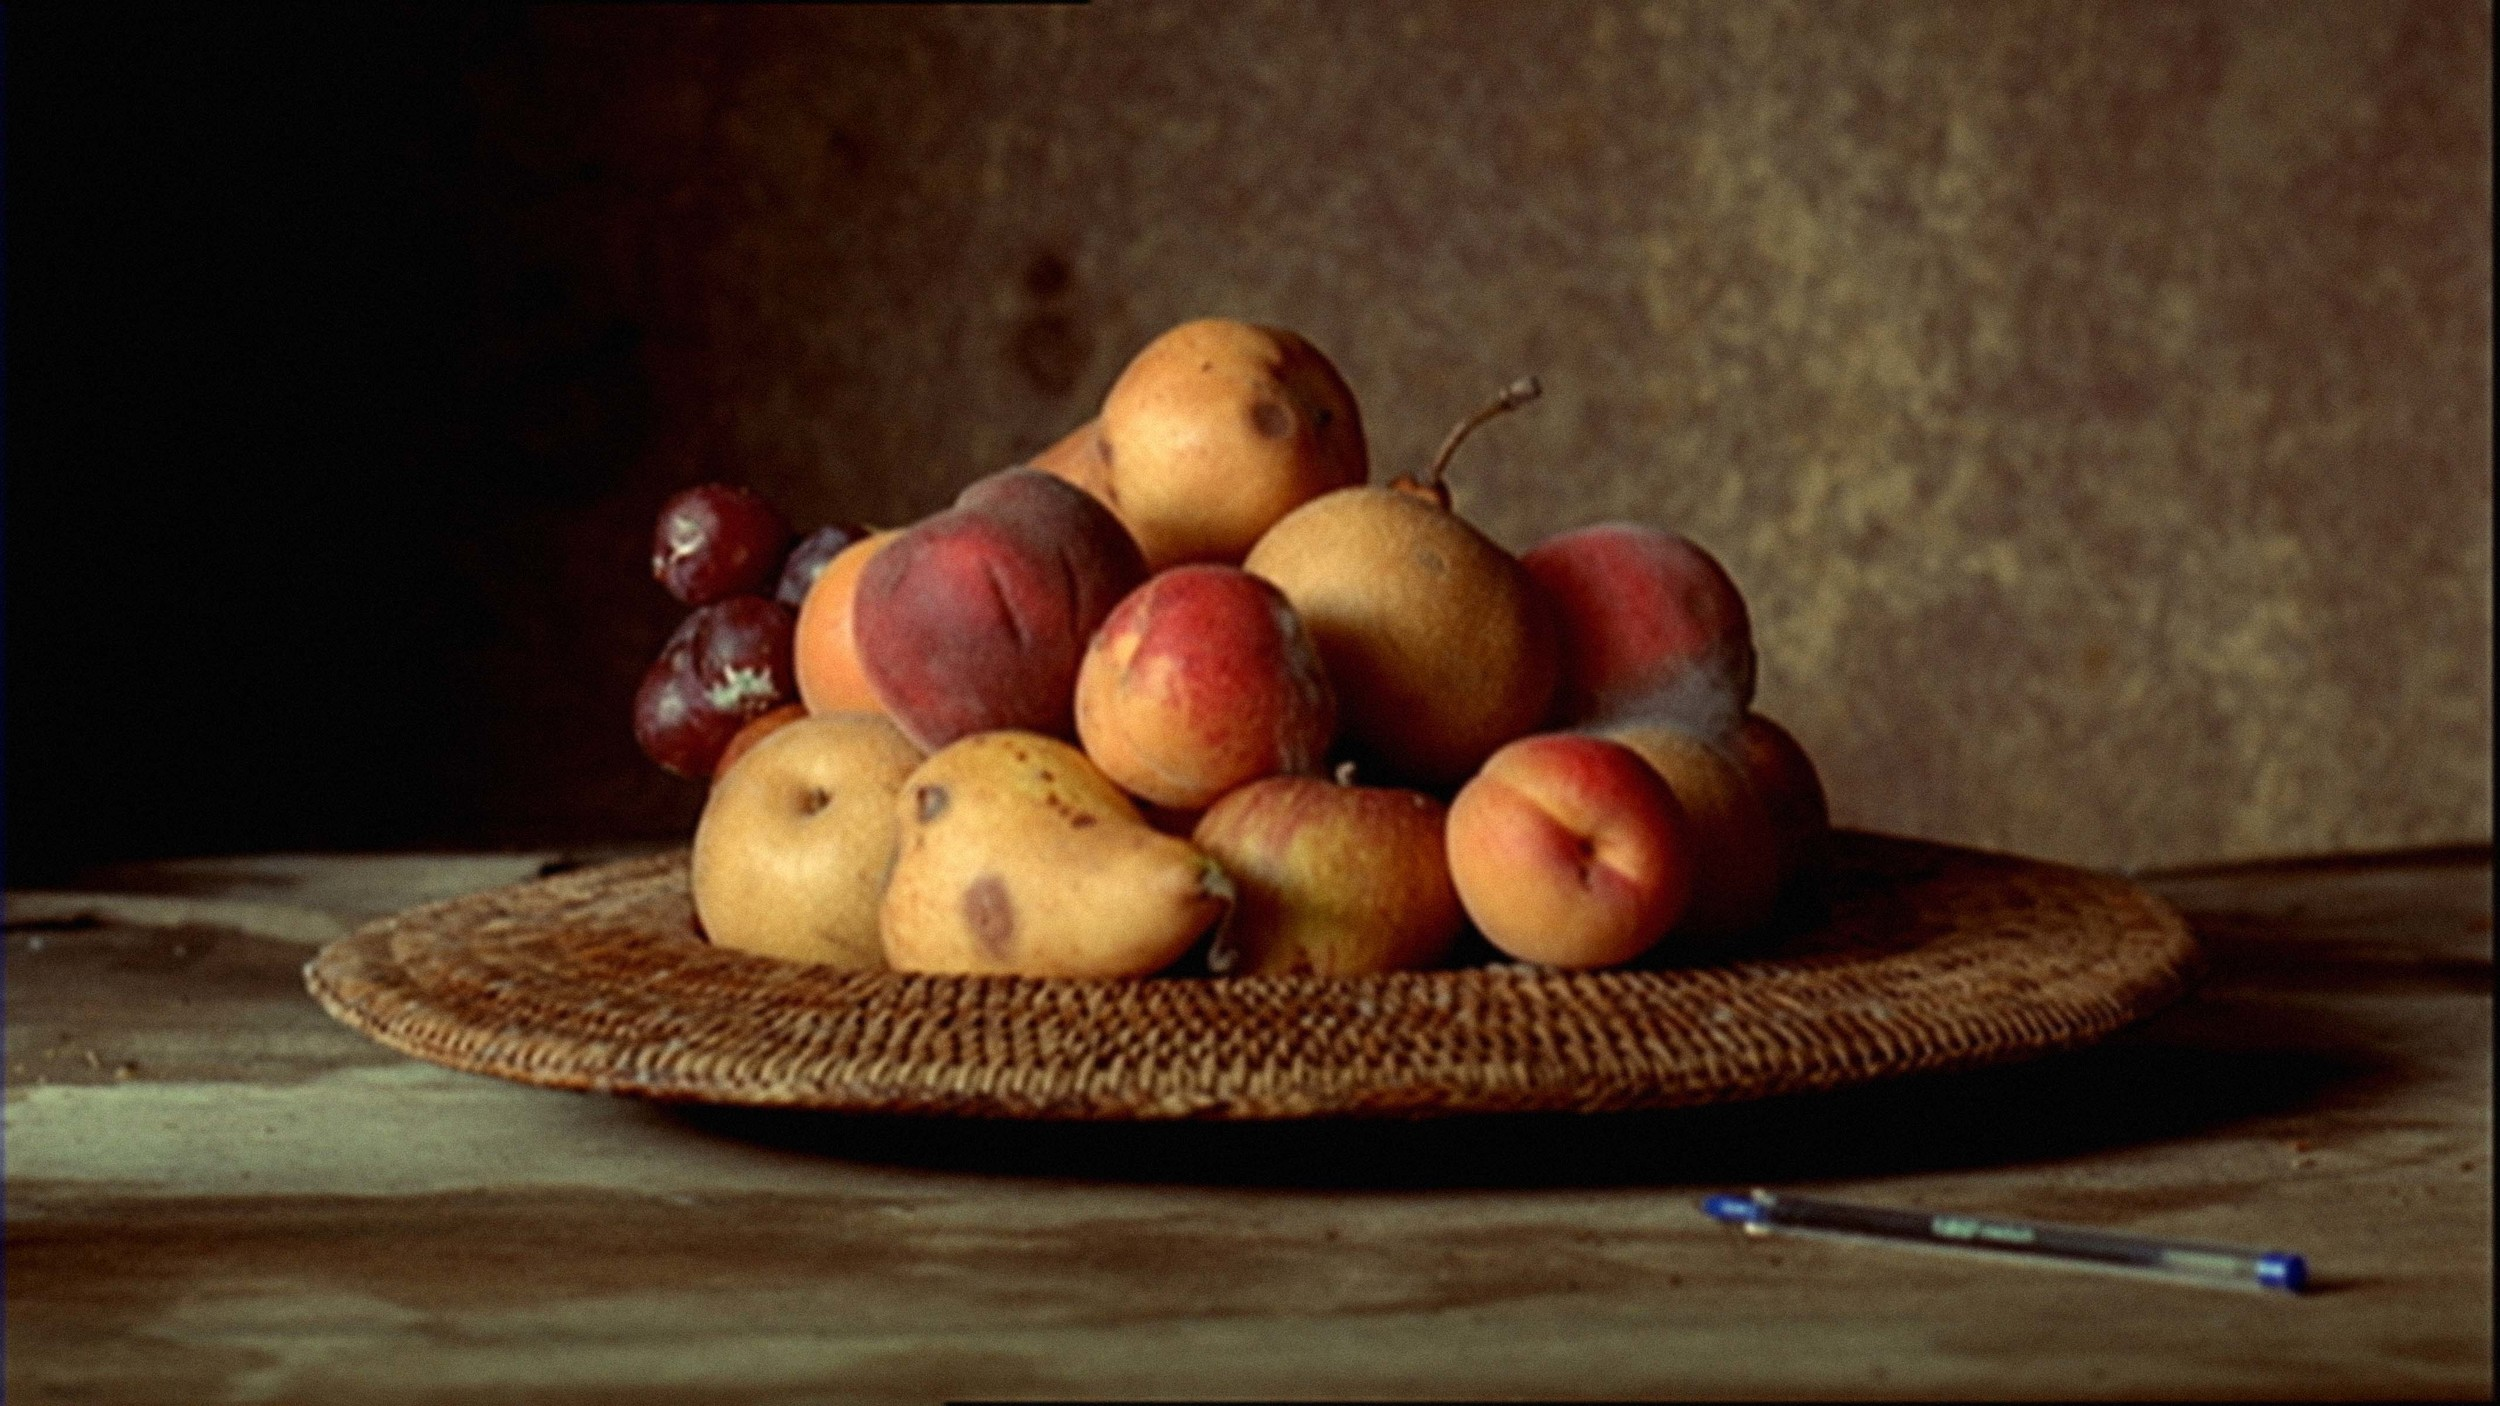 Still-shot from '  Still Life  ', 2001 by Sam Taylor-Johnson